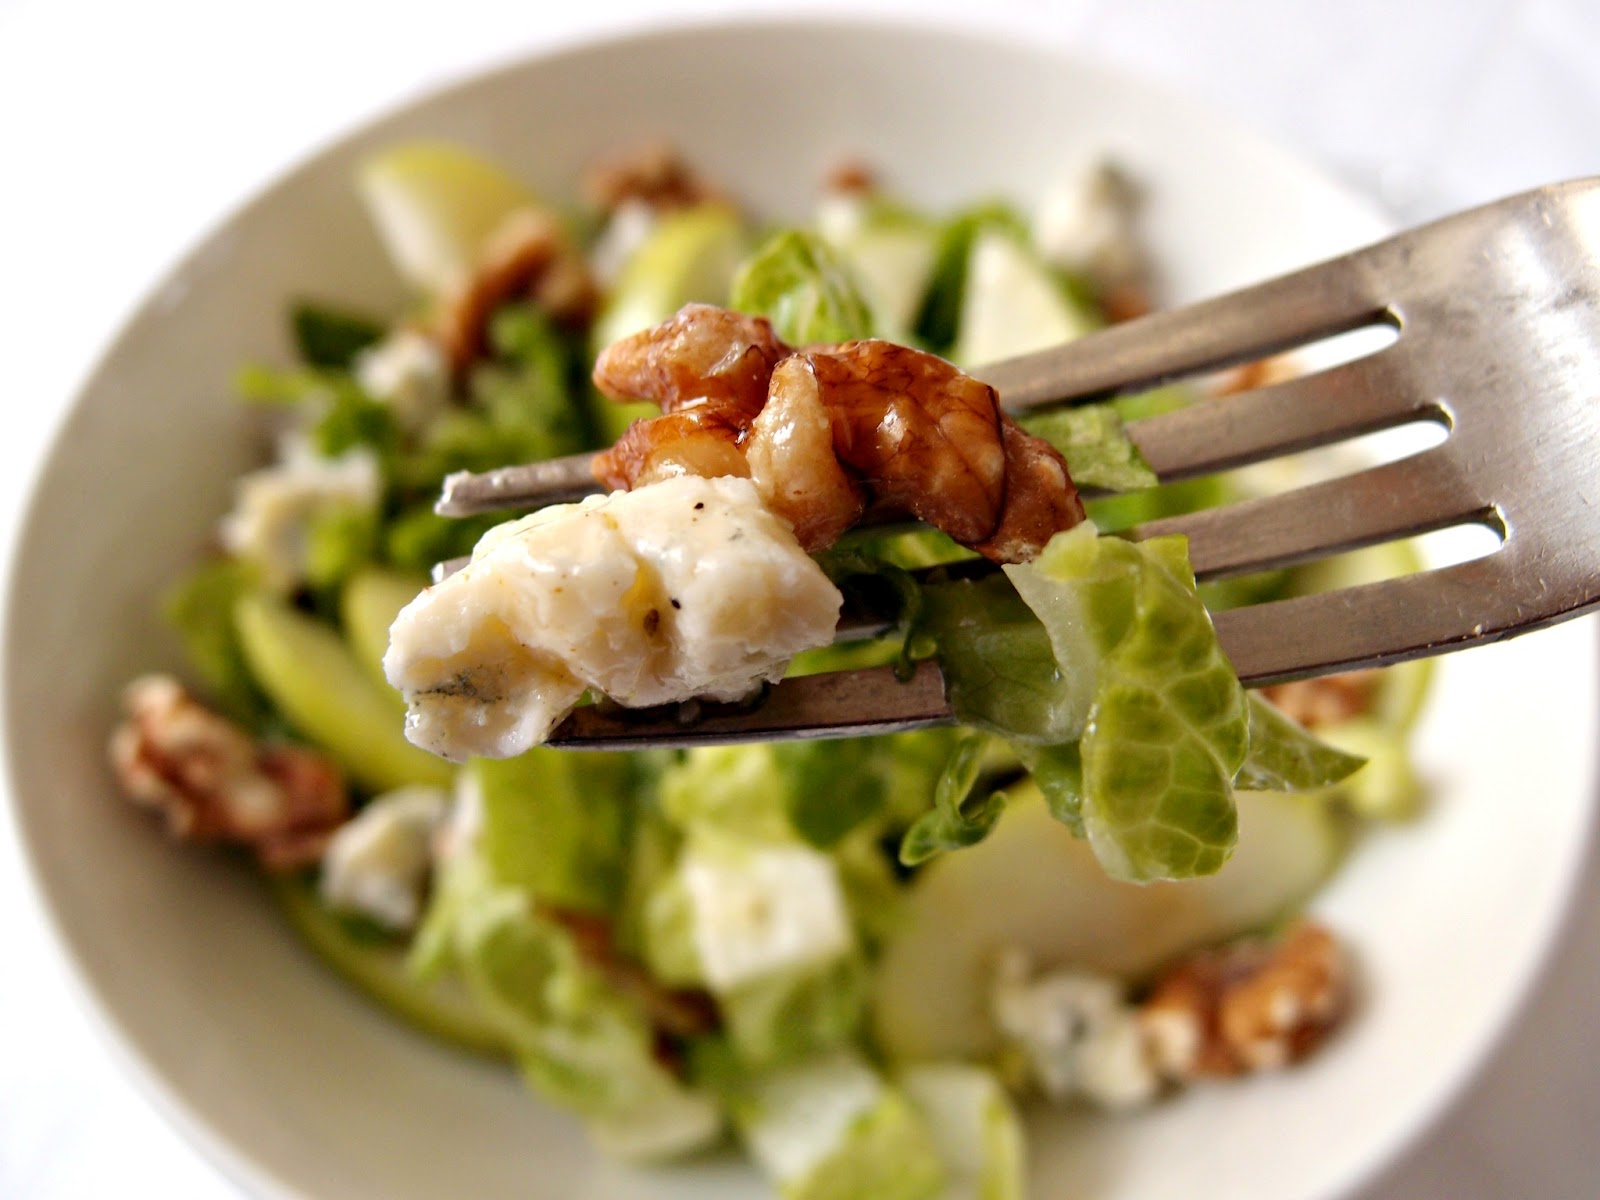 Milk and Honey: Cos Salad with Apples, Walnuts and Blue Cheese